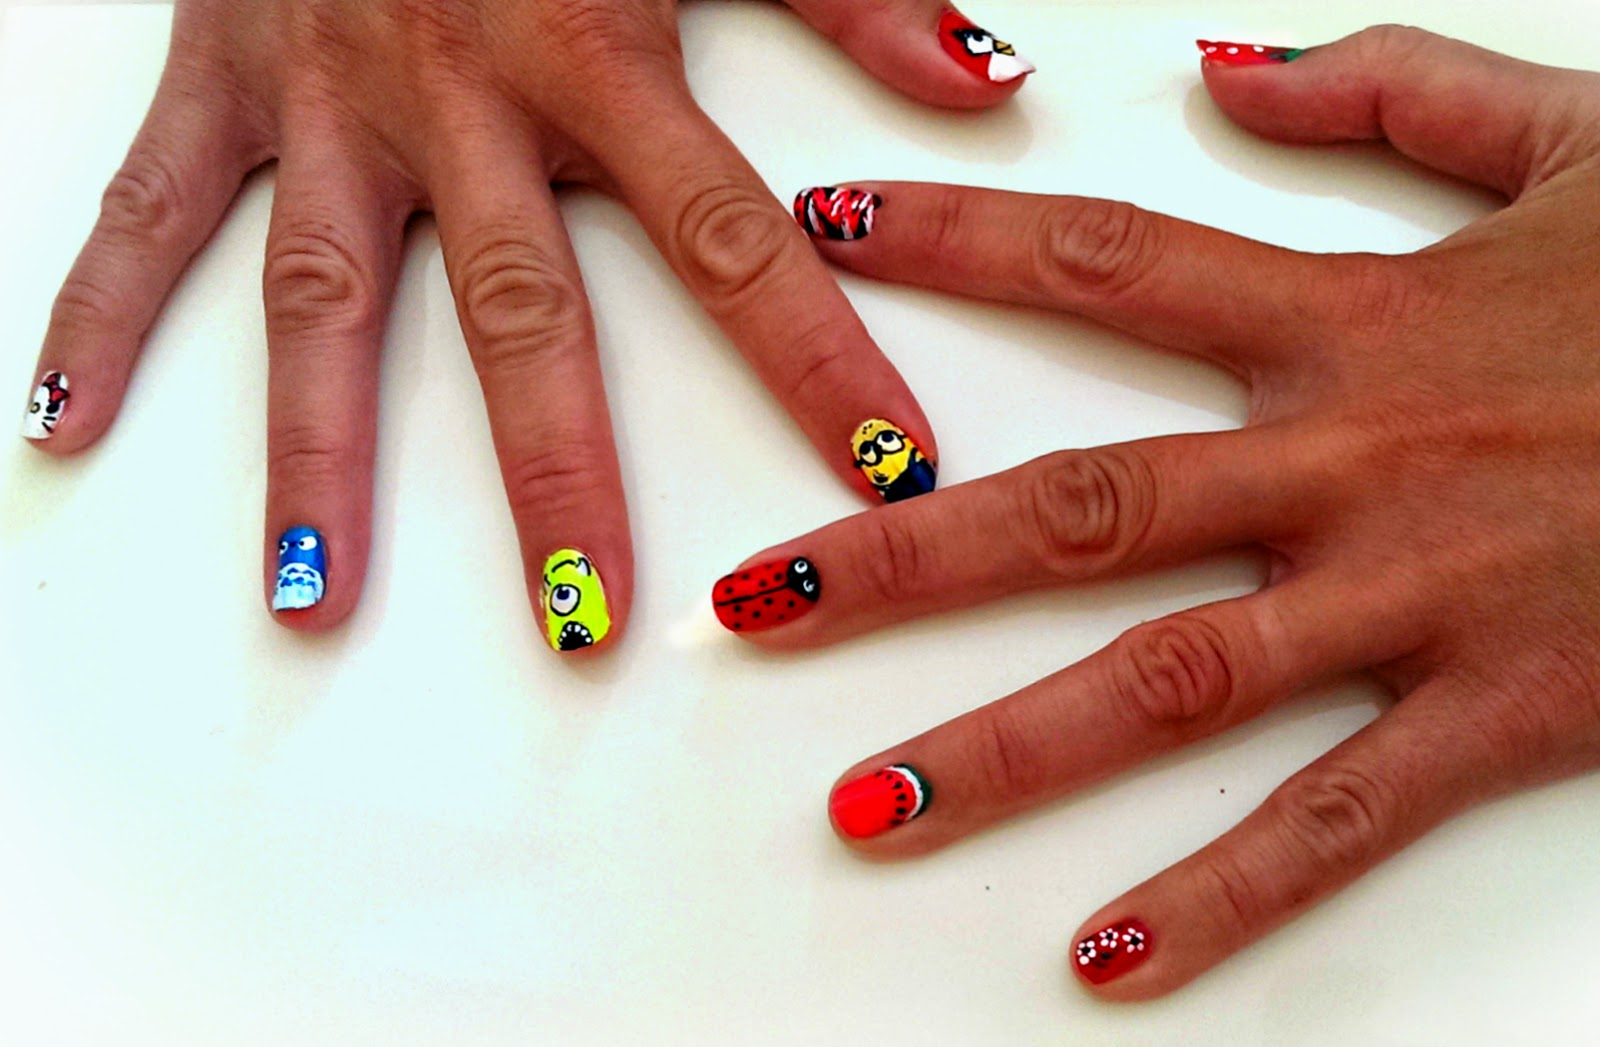 Hot designs nail art ideas prinsesfo Images